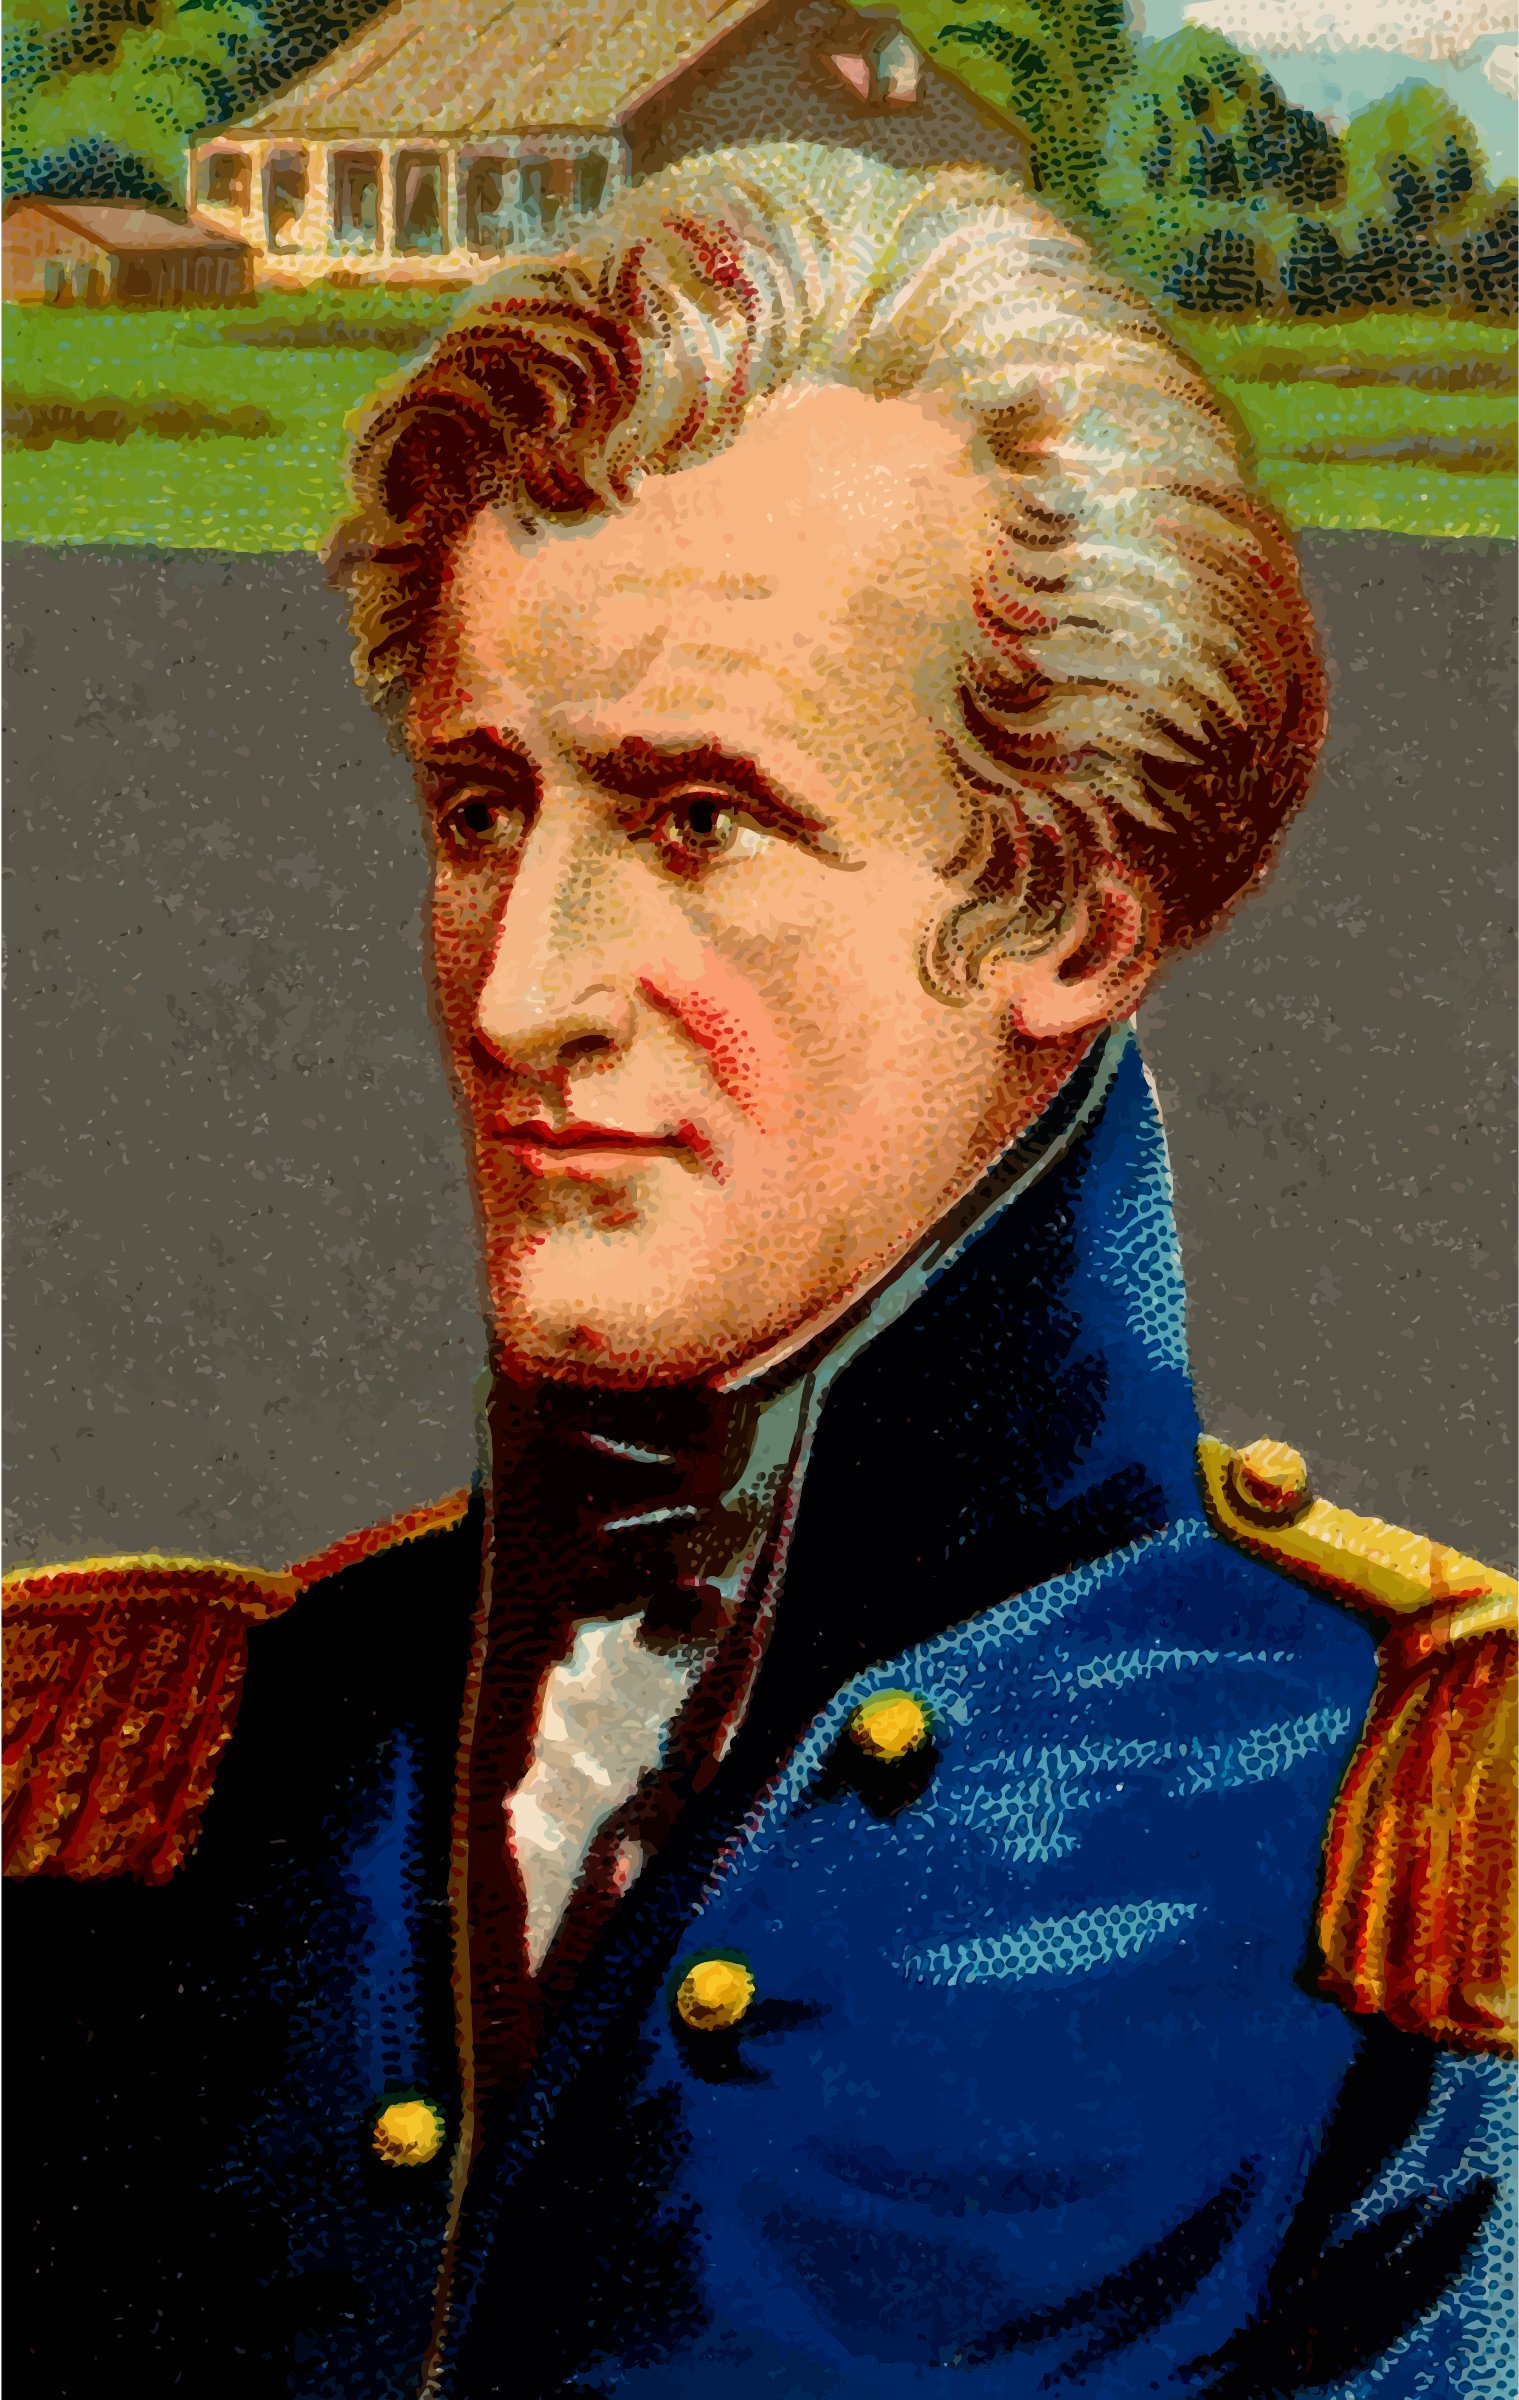 CigaretteCard - Andrew Jackson by Firkin